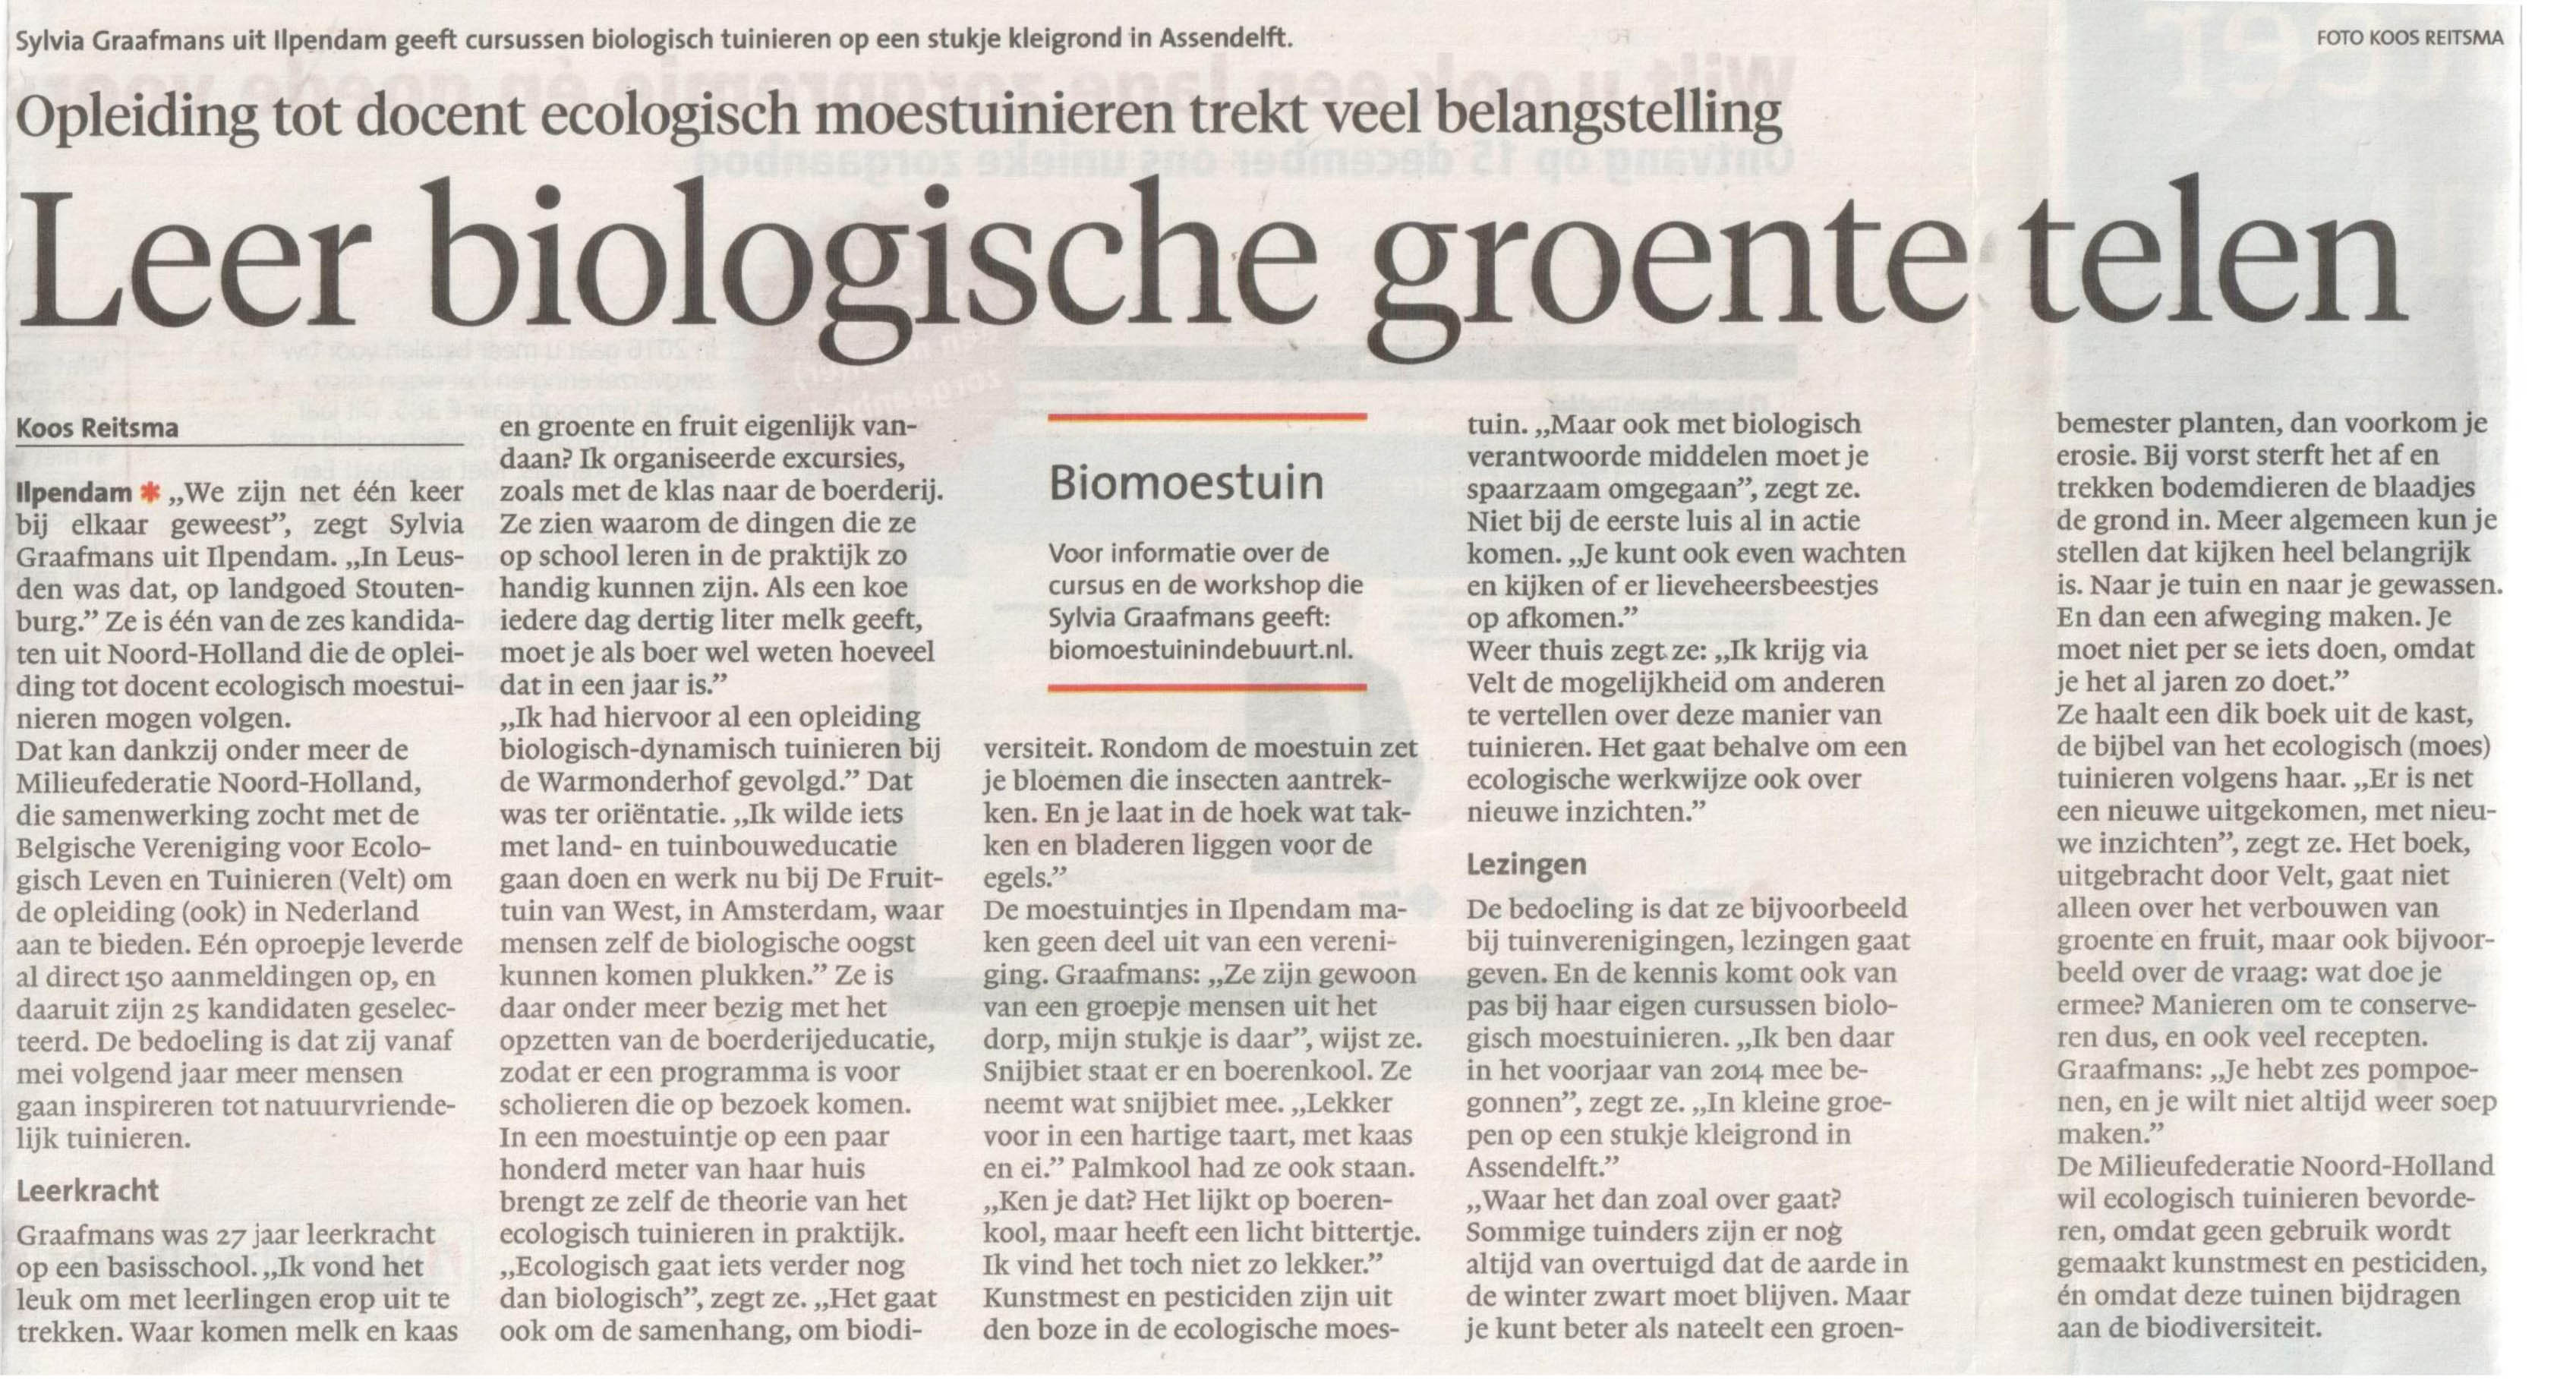 interview Sylvia Graafmans Noord Hollands Dagblad 2 december 2015-2